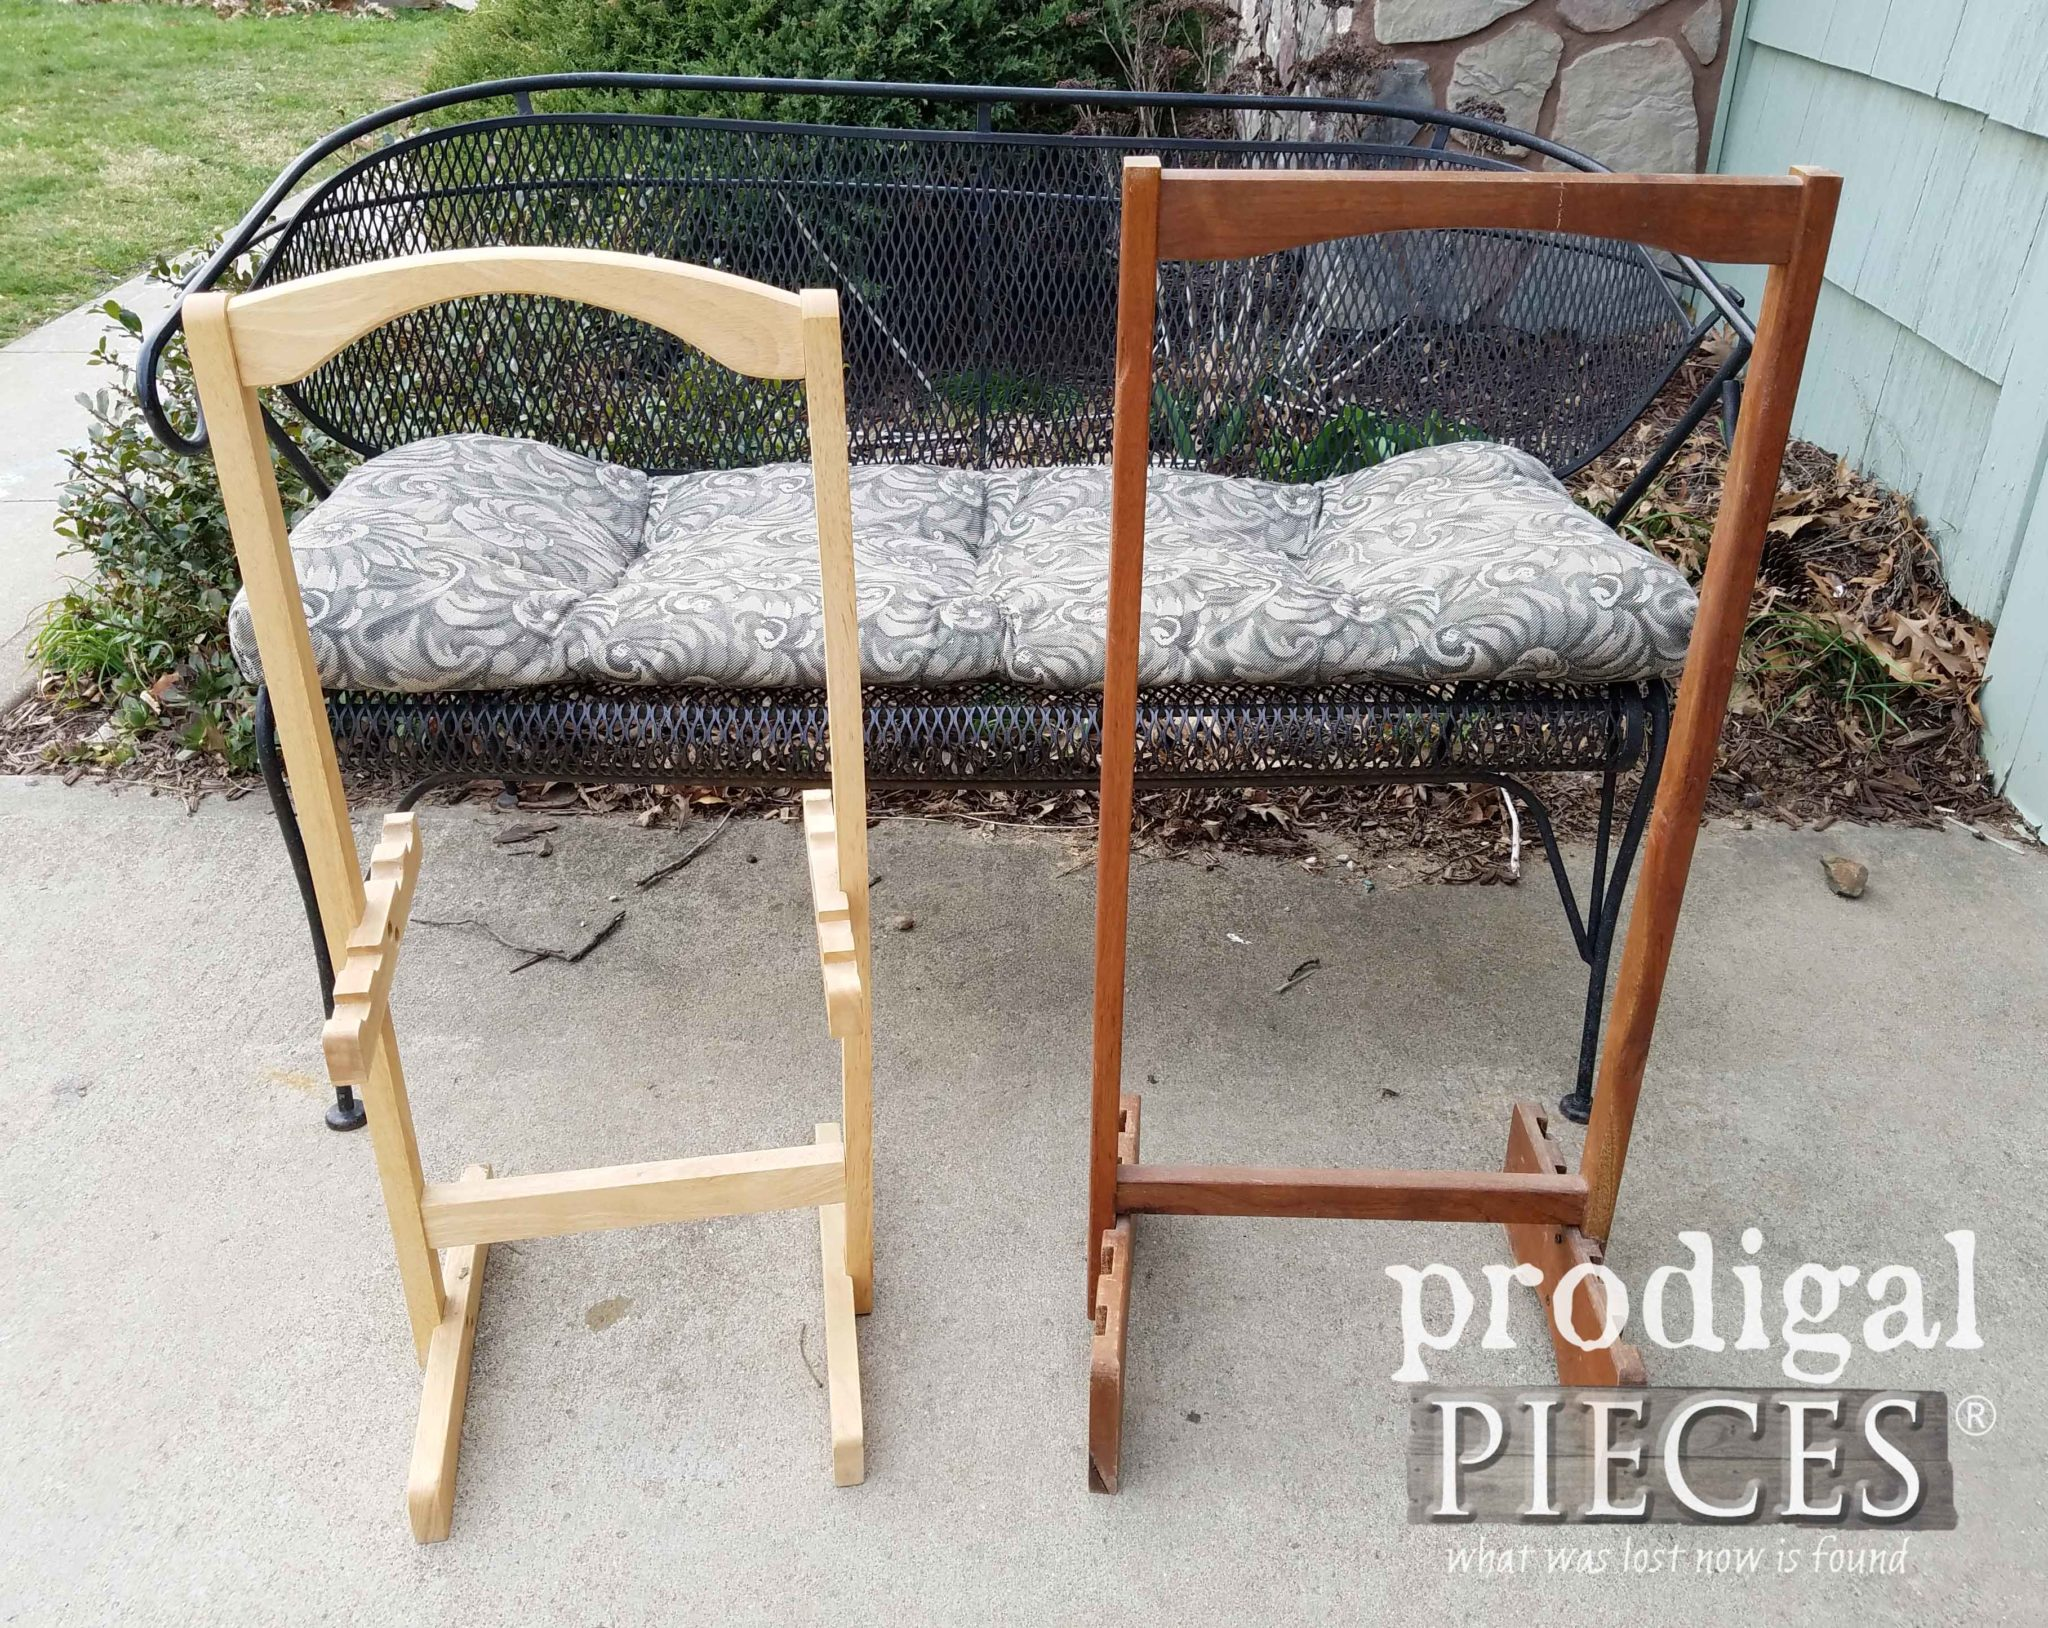 Wooden Stands Before Repurposed Makeover by Larissa of Prodigal Pieces | prodigalpieces.com